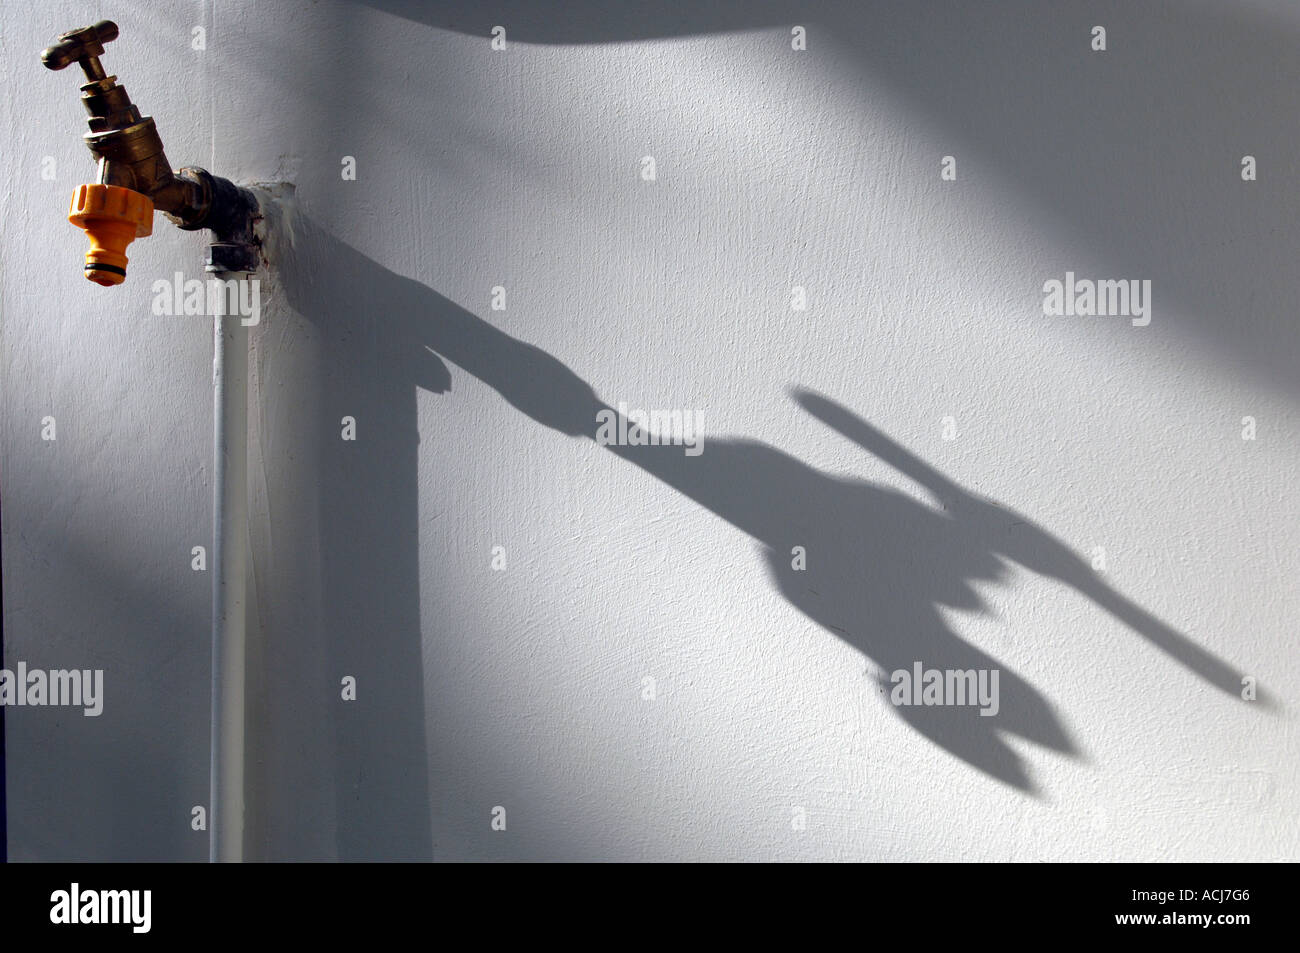 the-shadow-of-a-greenhouse-water-tap-on-